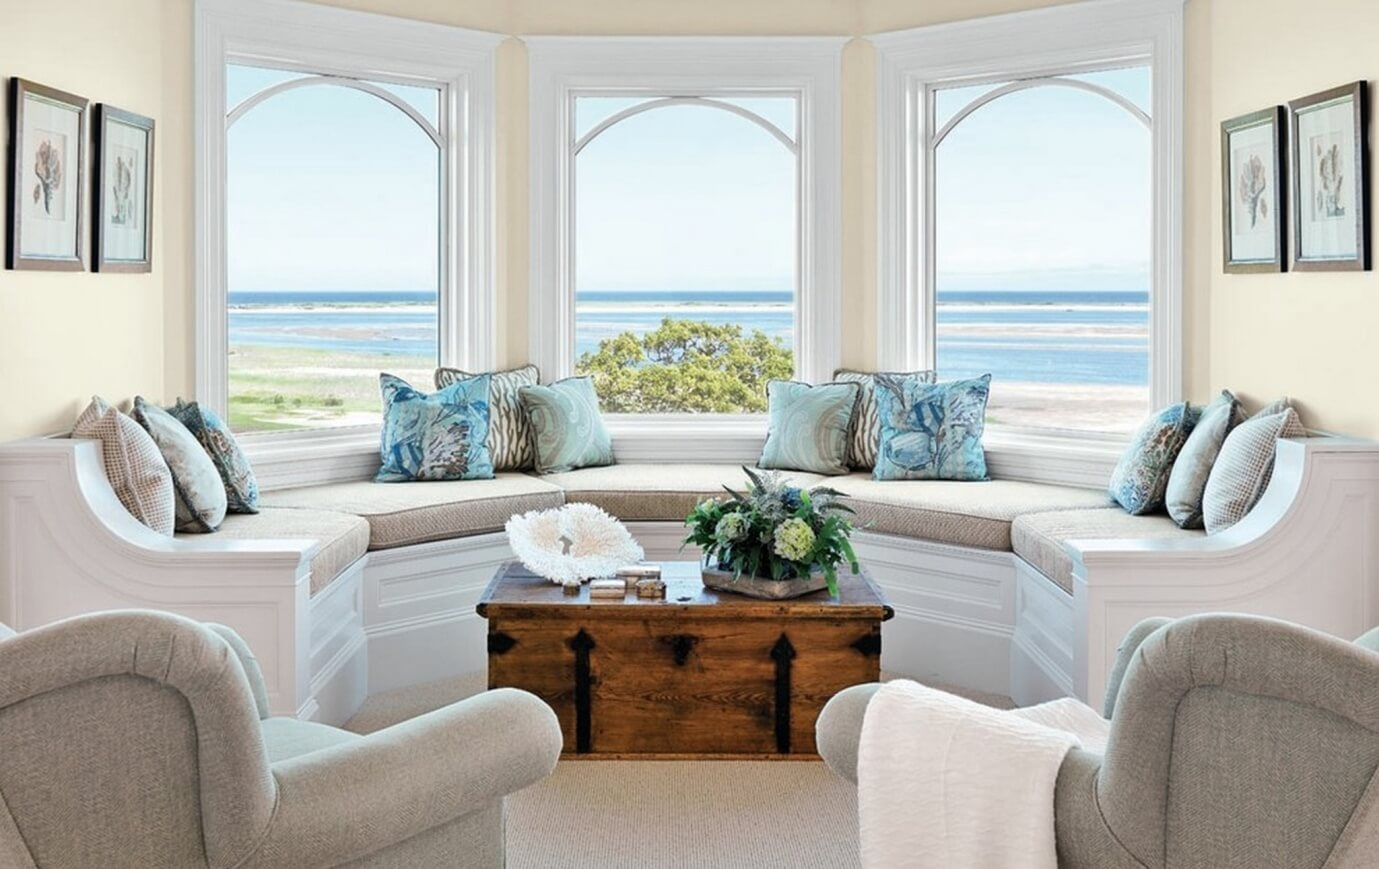 Living room with windows facing sea - Task Masters